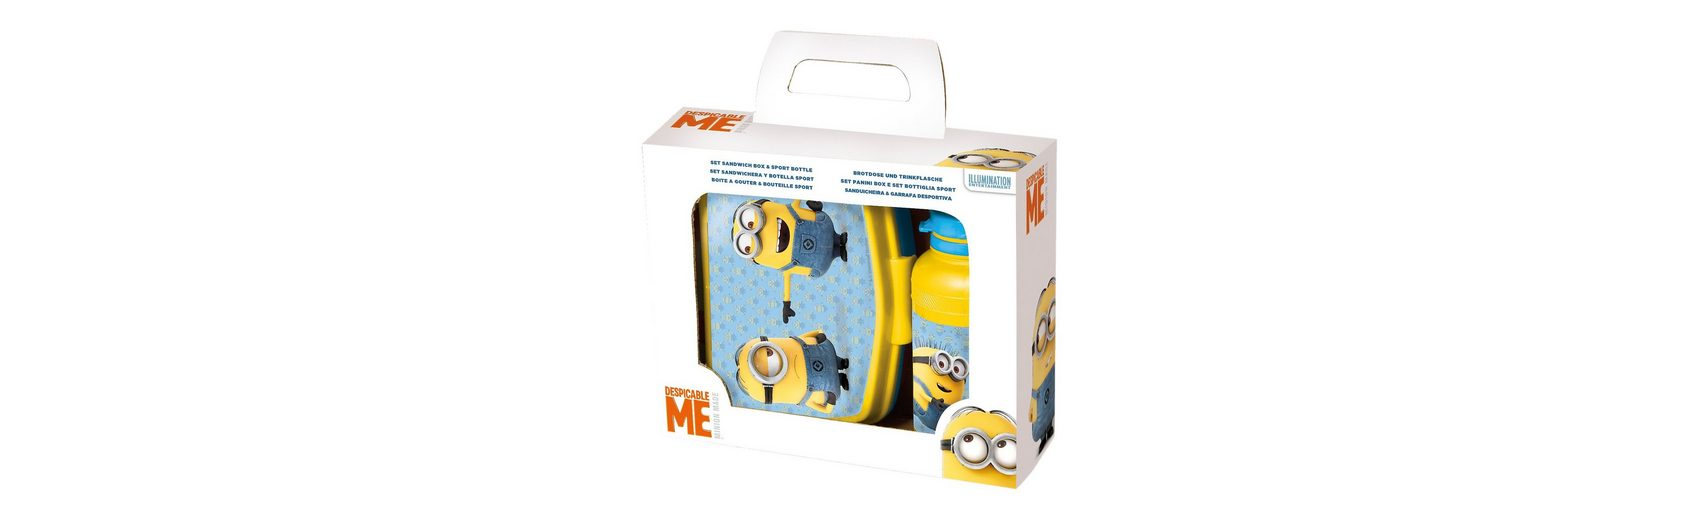 JOY TOY Pausenset Minions, 2-tlg.